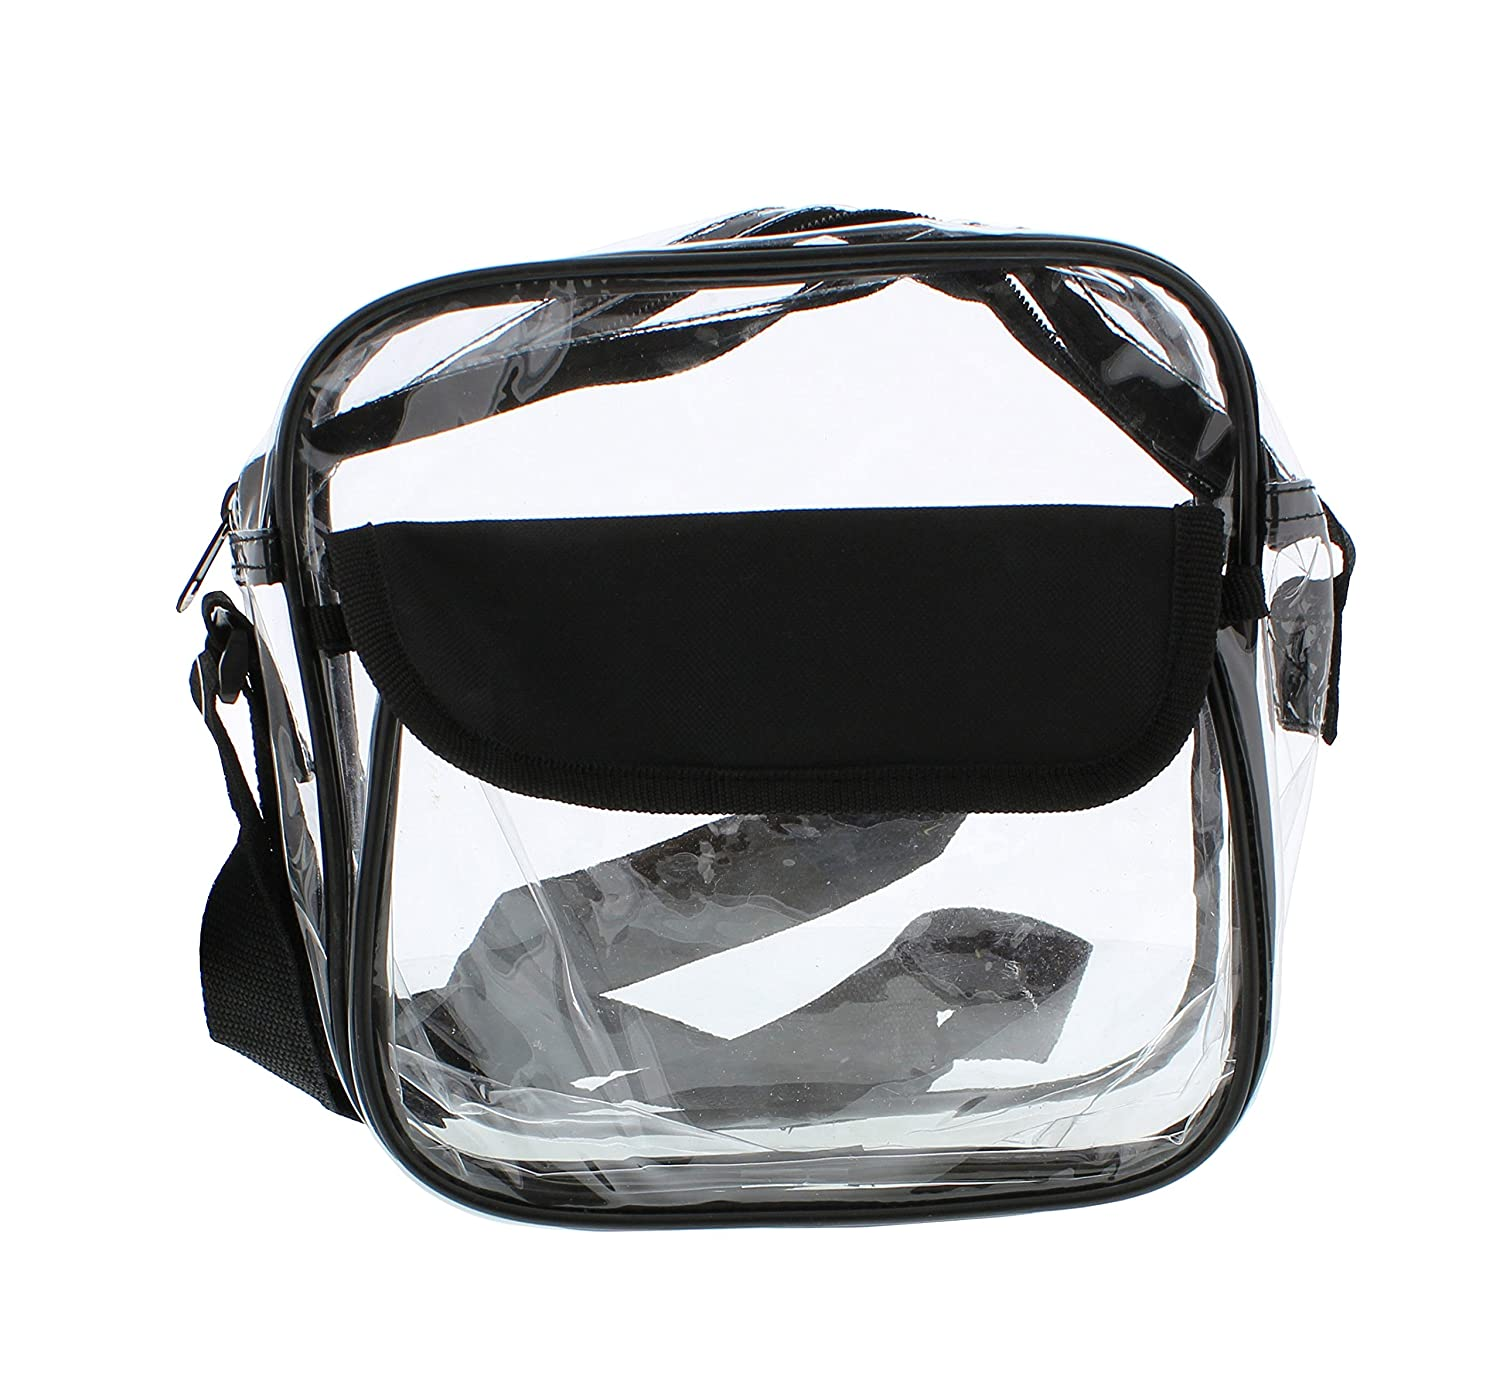 "Clear Purse, Large 12"" x 12"" x 6"", NFL Stadium Approved Bag with Zipper & Comfortable Shoulder Strap Redneck Convent"